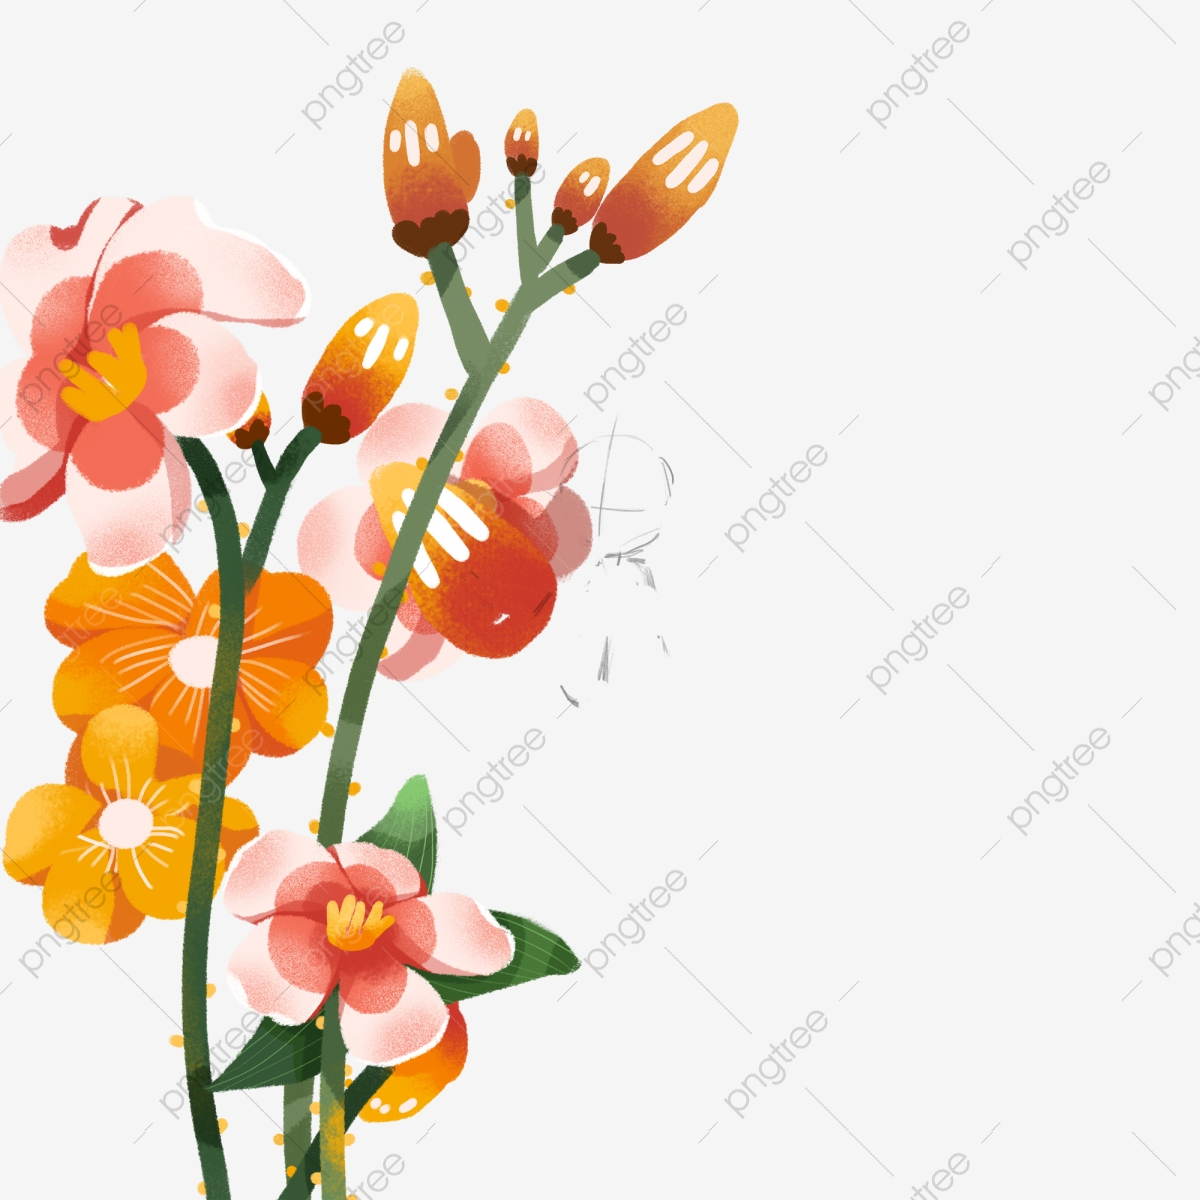 Beautiful Flowers Free Clipart Flower Plants Fresh Petals Beautiful Flowers Png Transparent Clipart Image And Psd File For Free Download